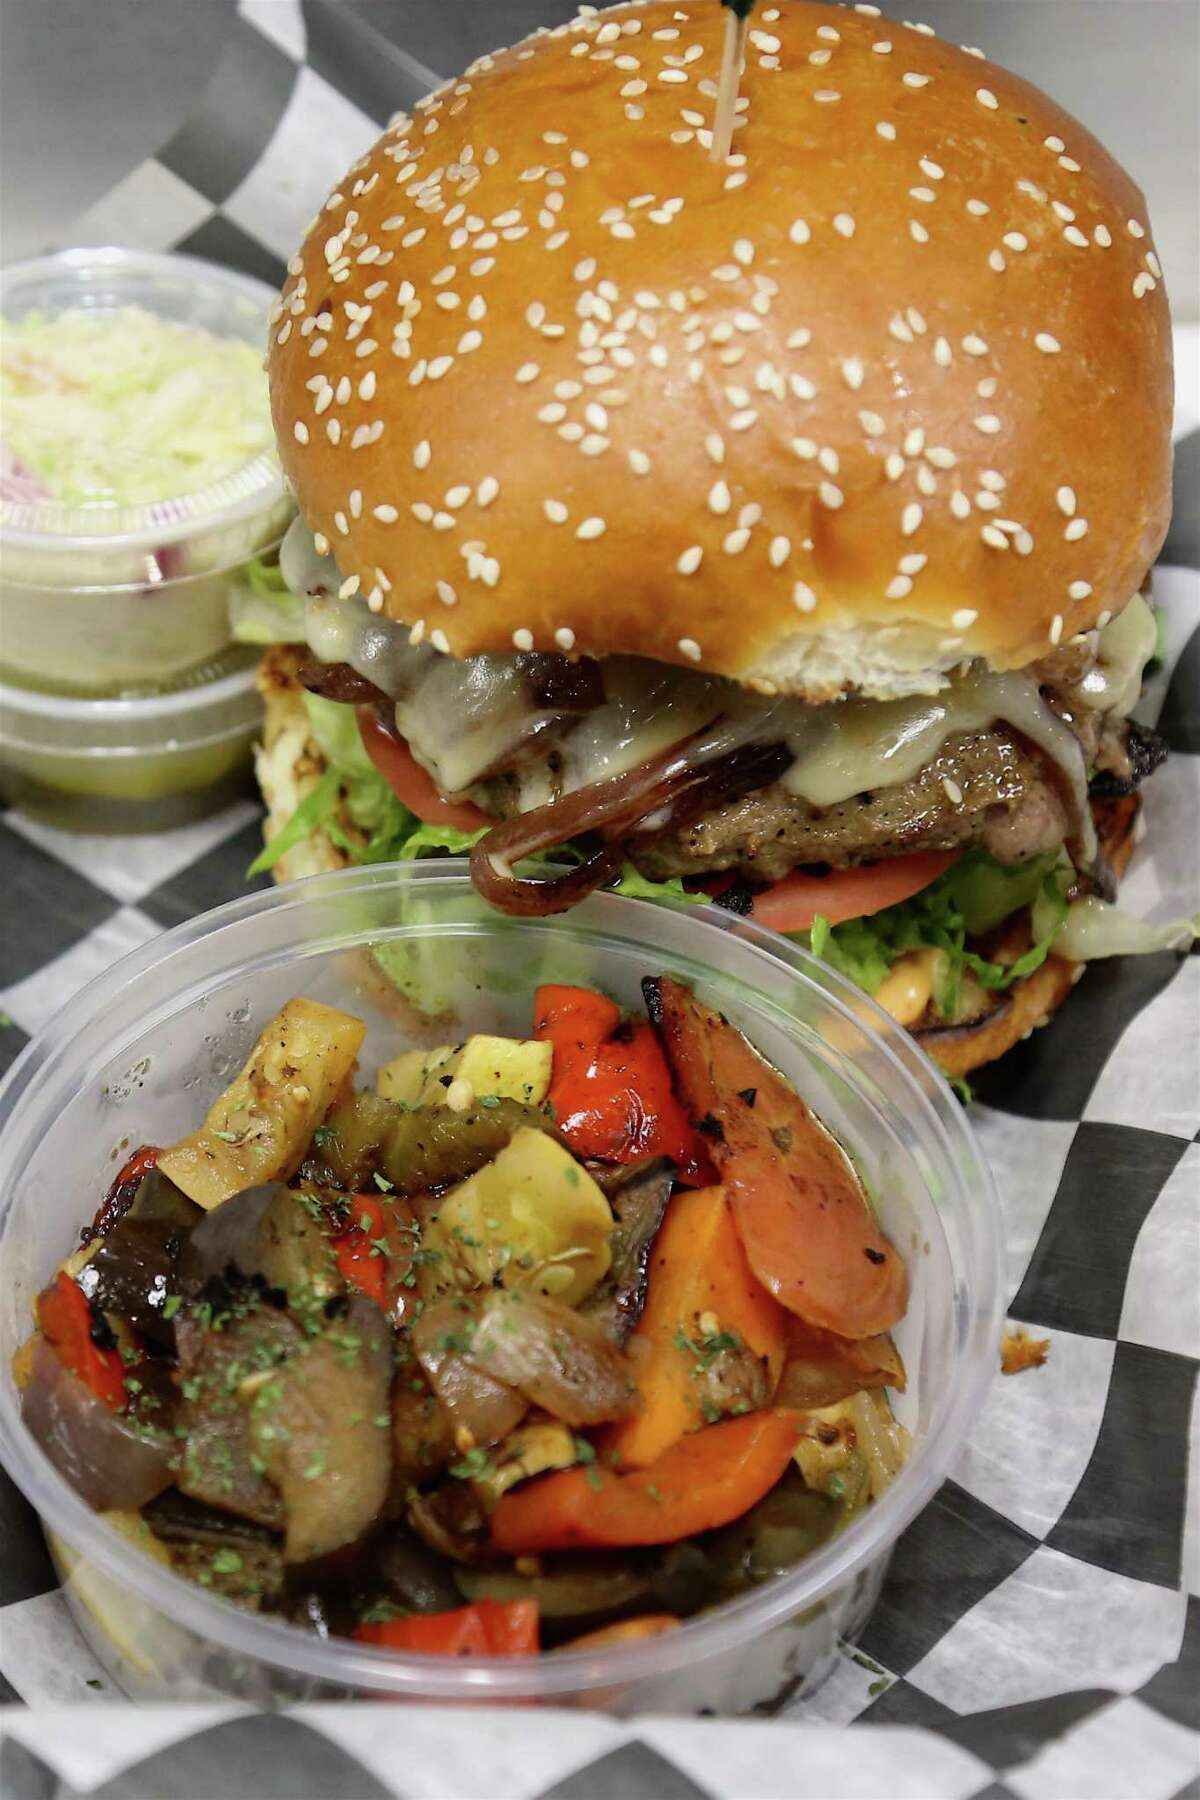 A burger with a side of vegetables at Burger Boss on Main Avenue in Norwalk.